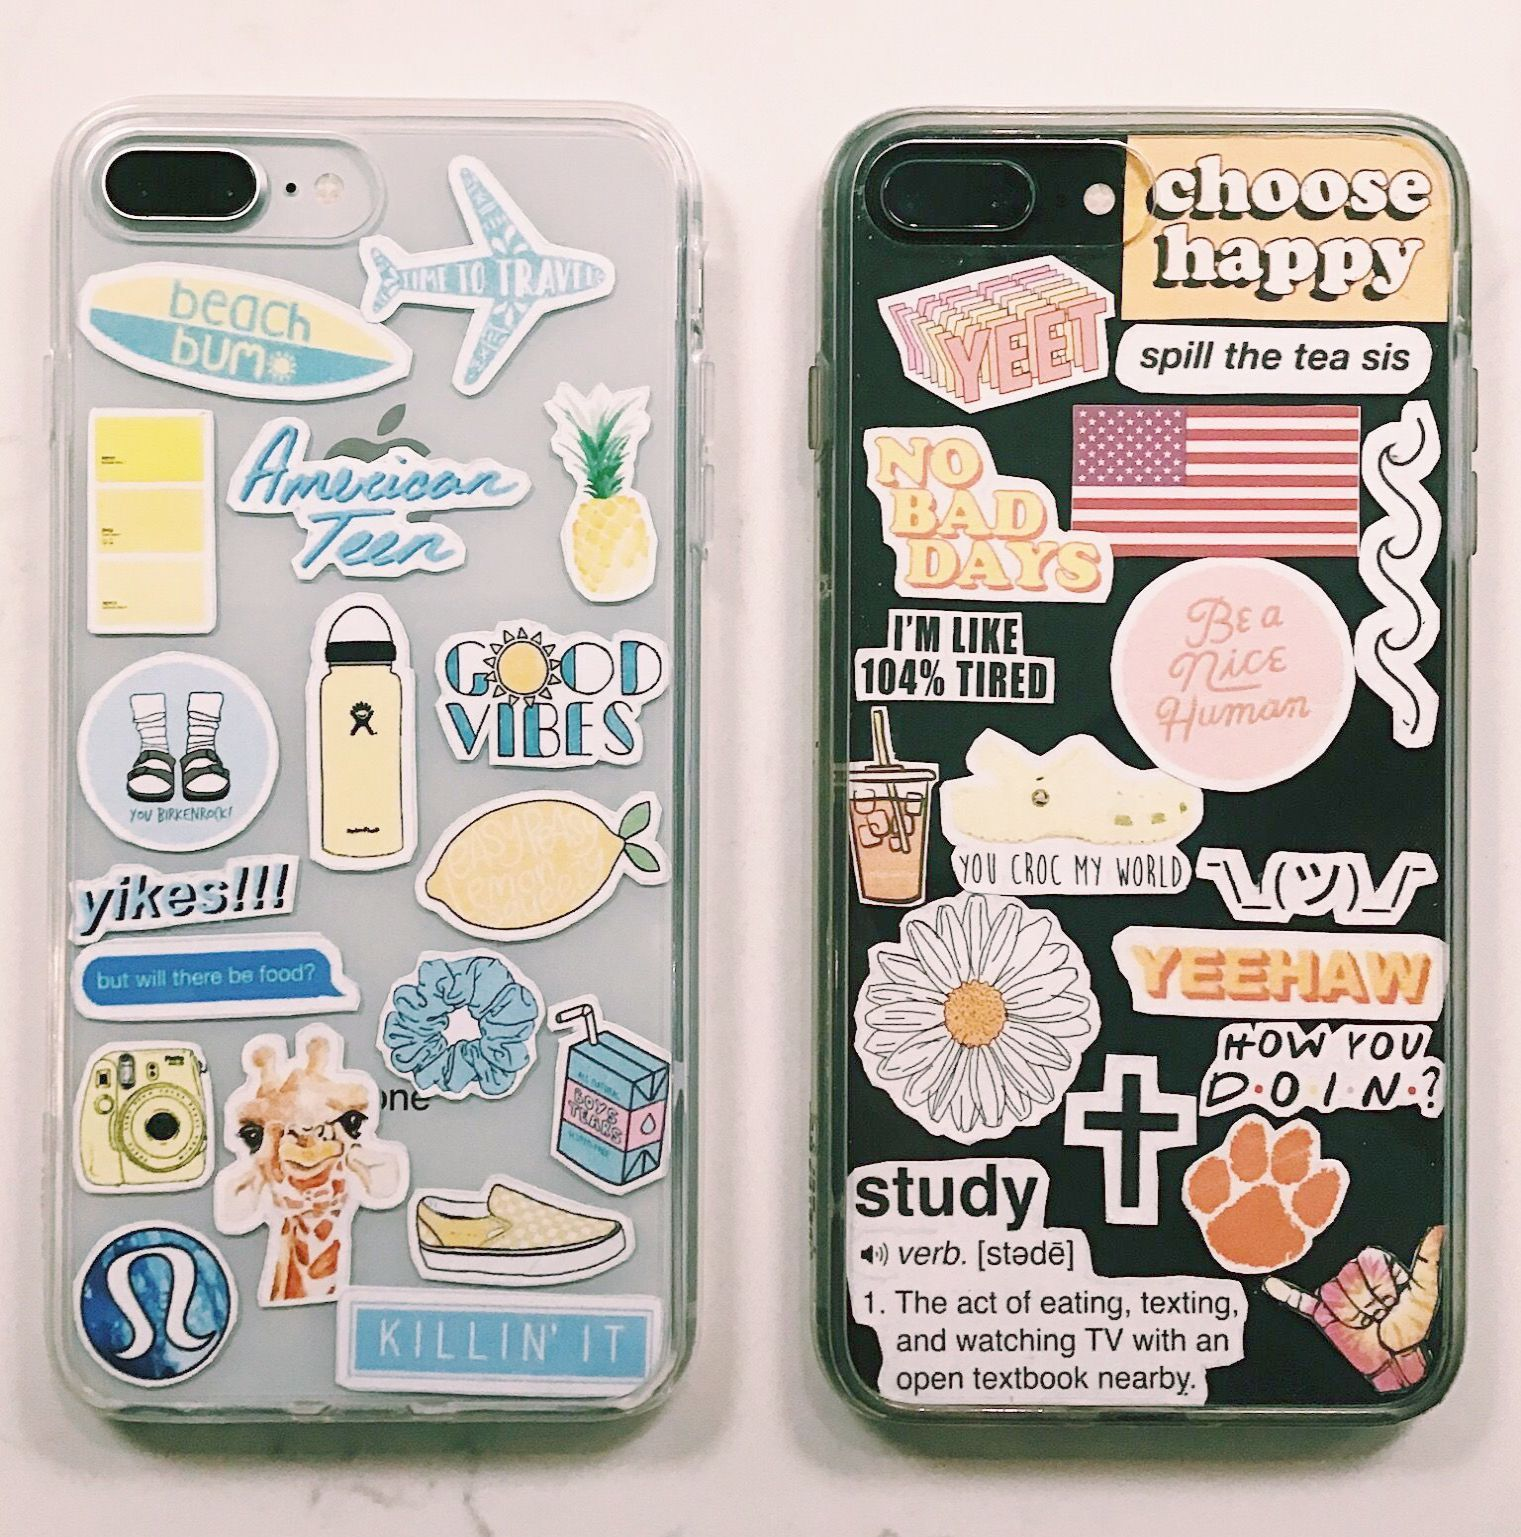 Iphone Xr Clear Case Near Me an Cases For Iphone Near Me; New Gadgets…